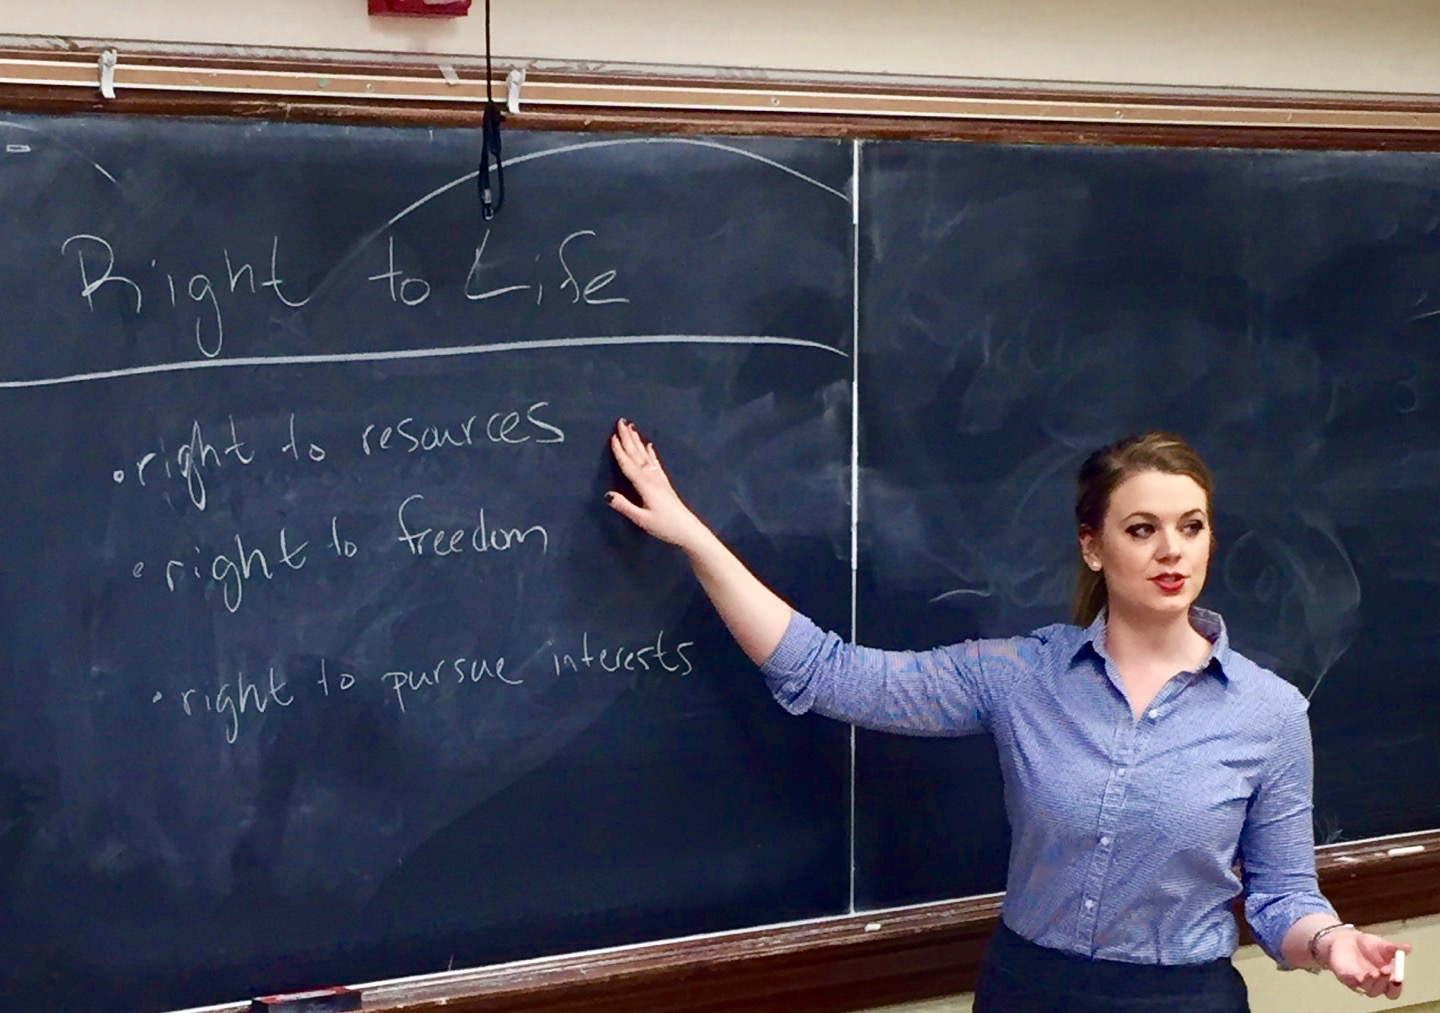 What does 'right to life' mean? We consider students' suggestions for discussion.